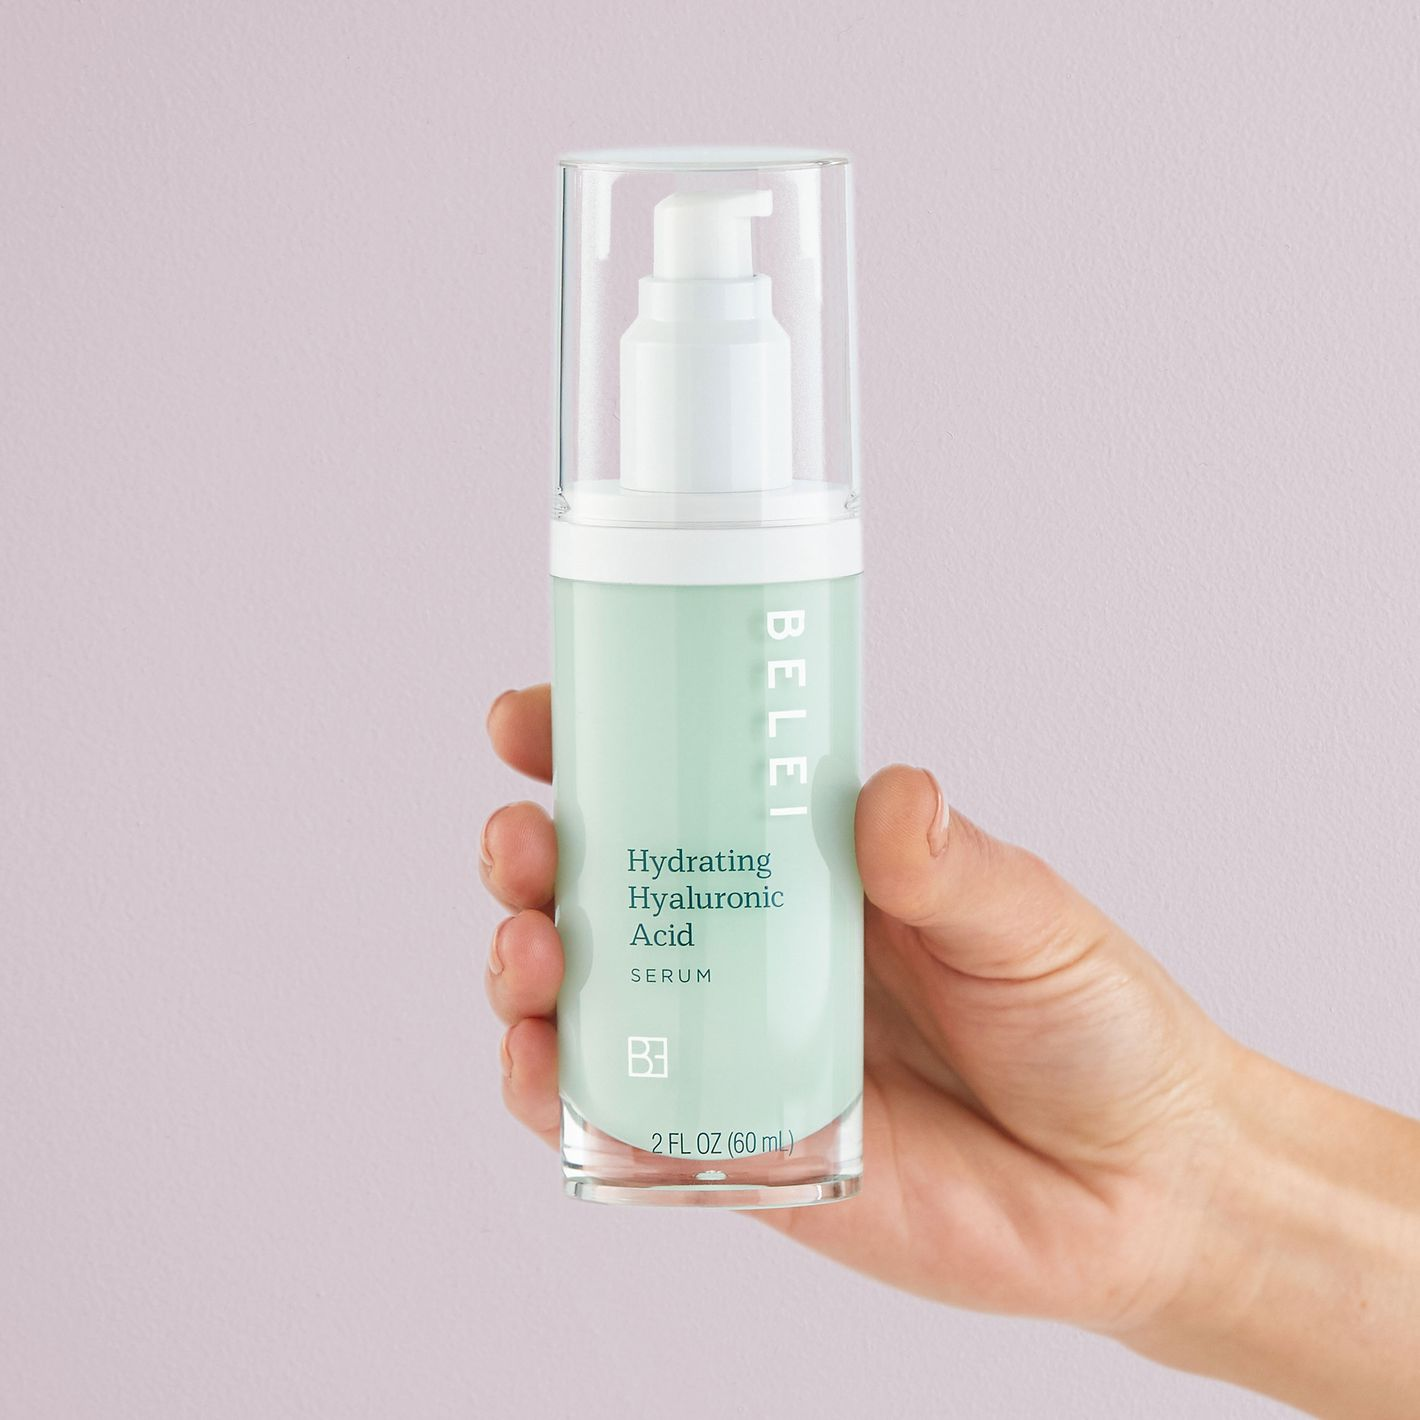 Belei Hydrating Hyaluronic Acid Serum